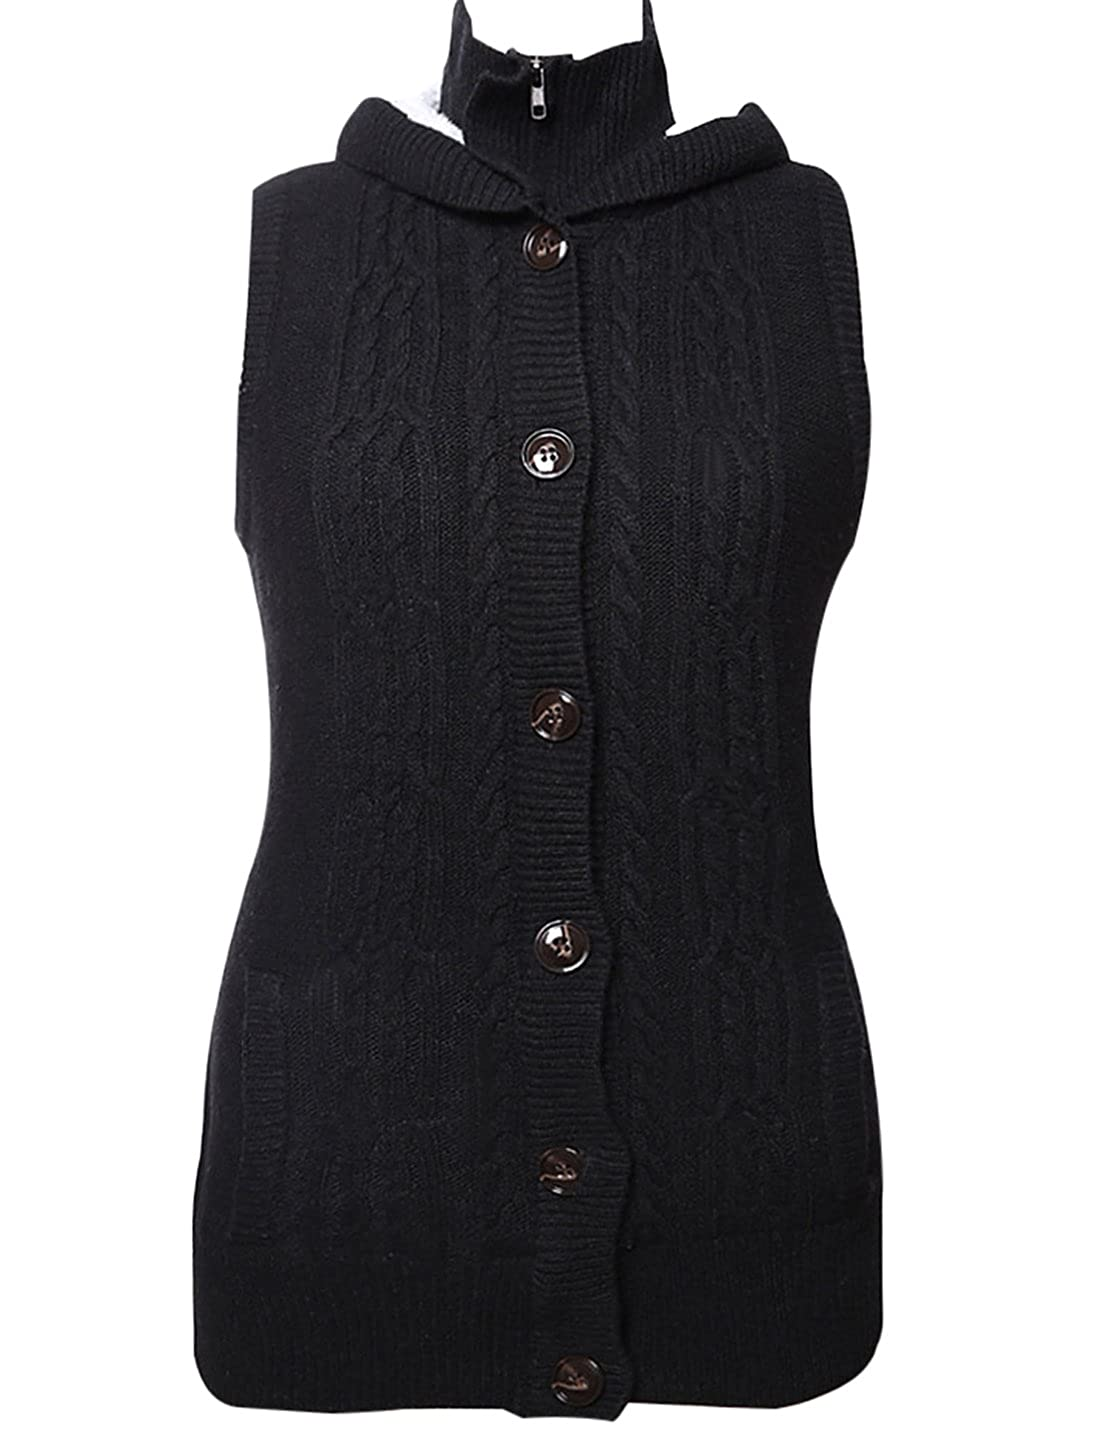 Jenkoon Women Button up Sleeveless Thick Sweater Cable Knit Hoodie Vest Cardigans